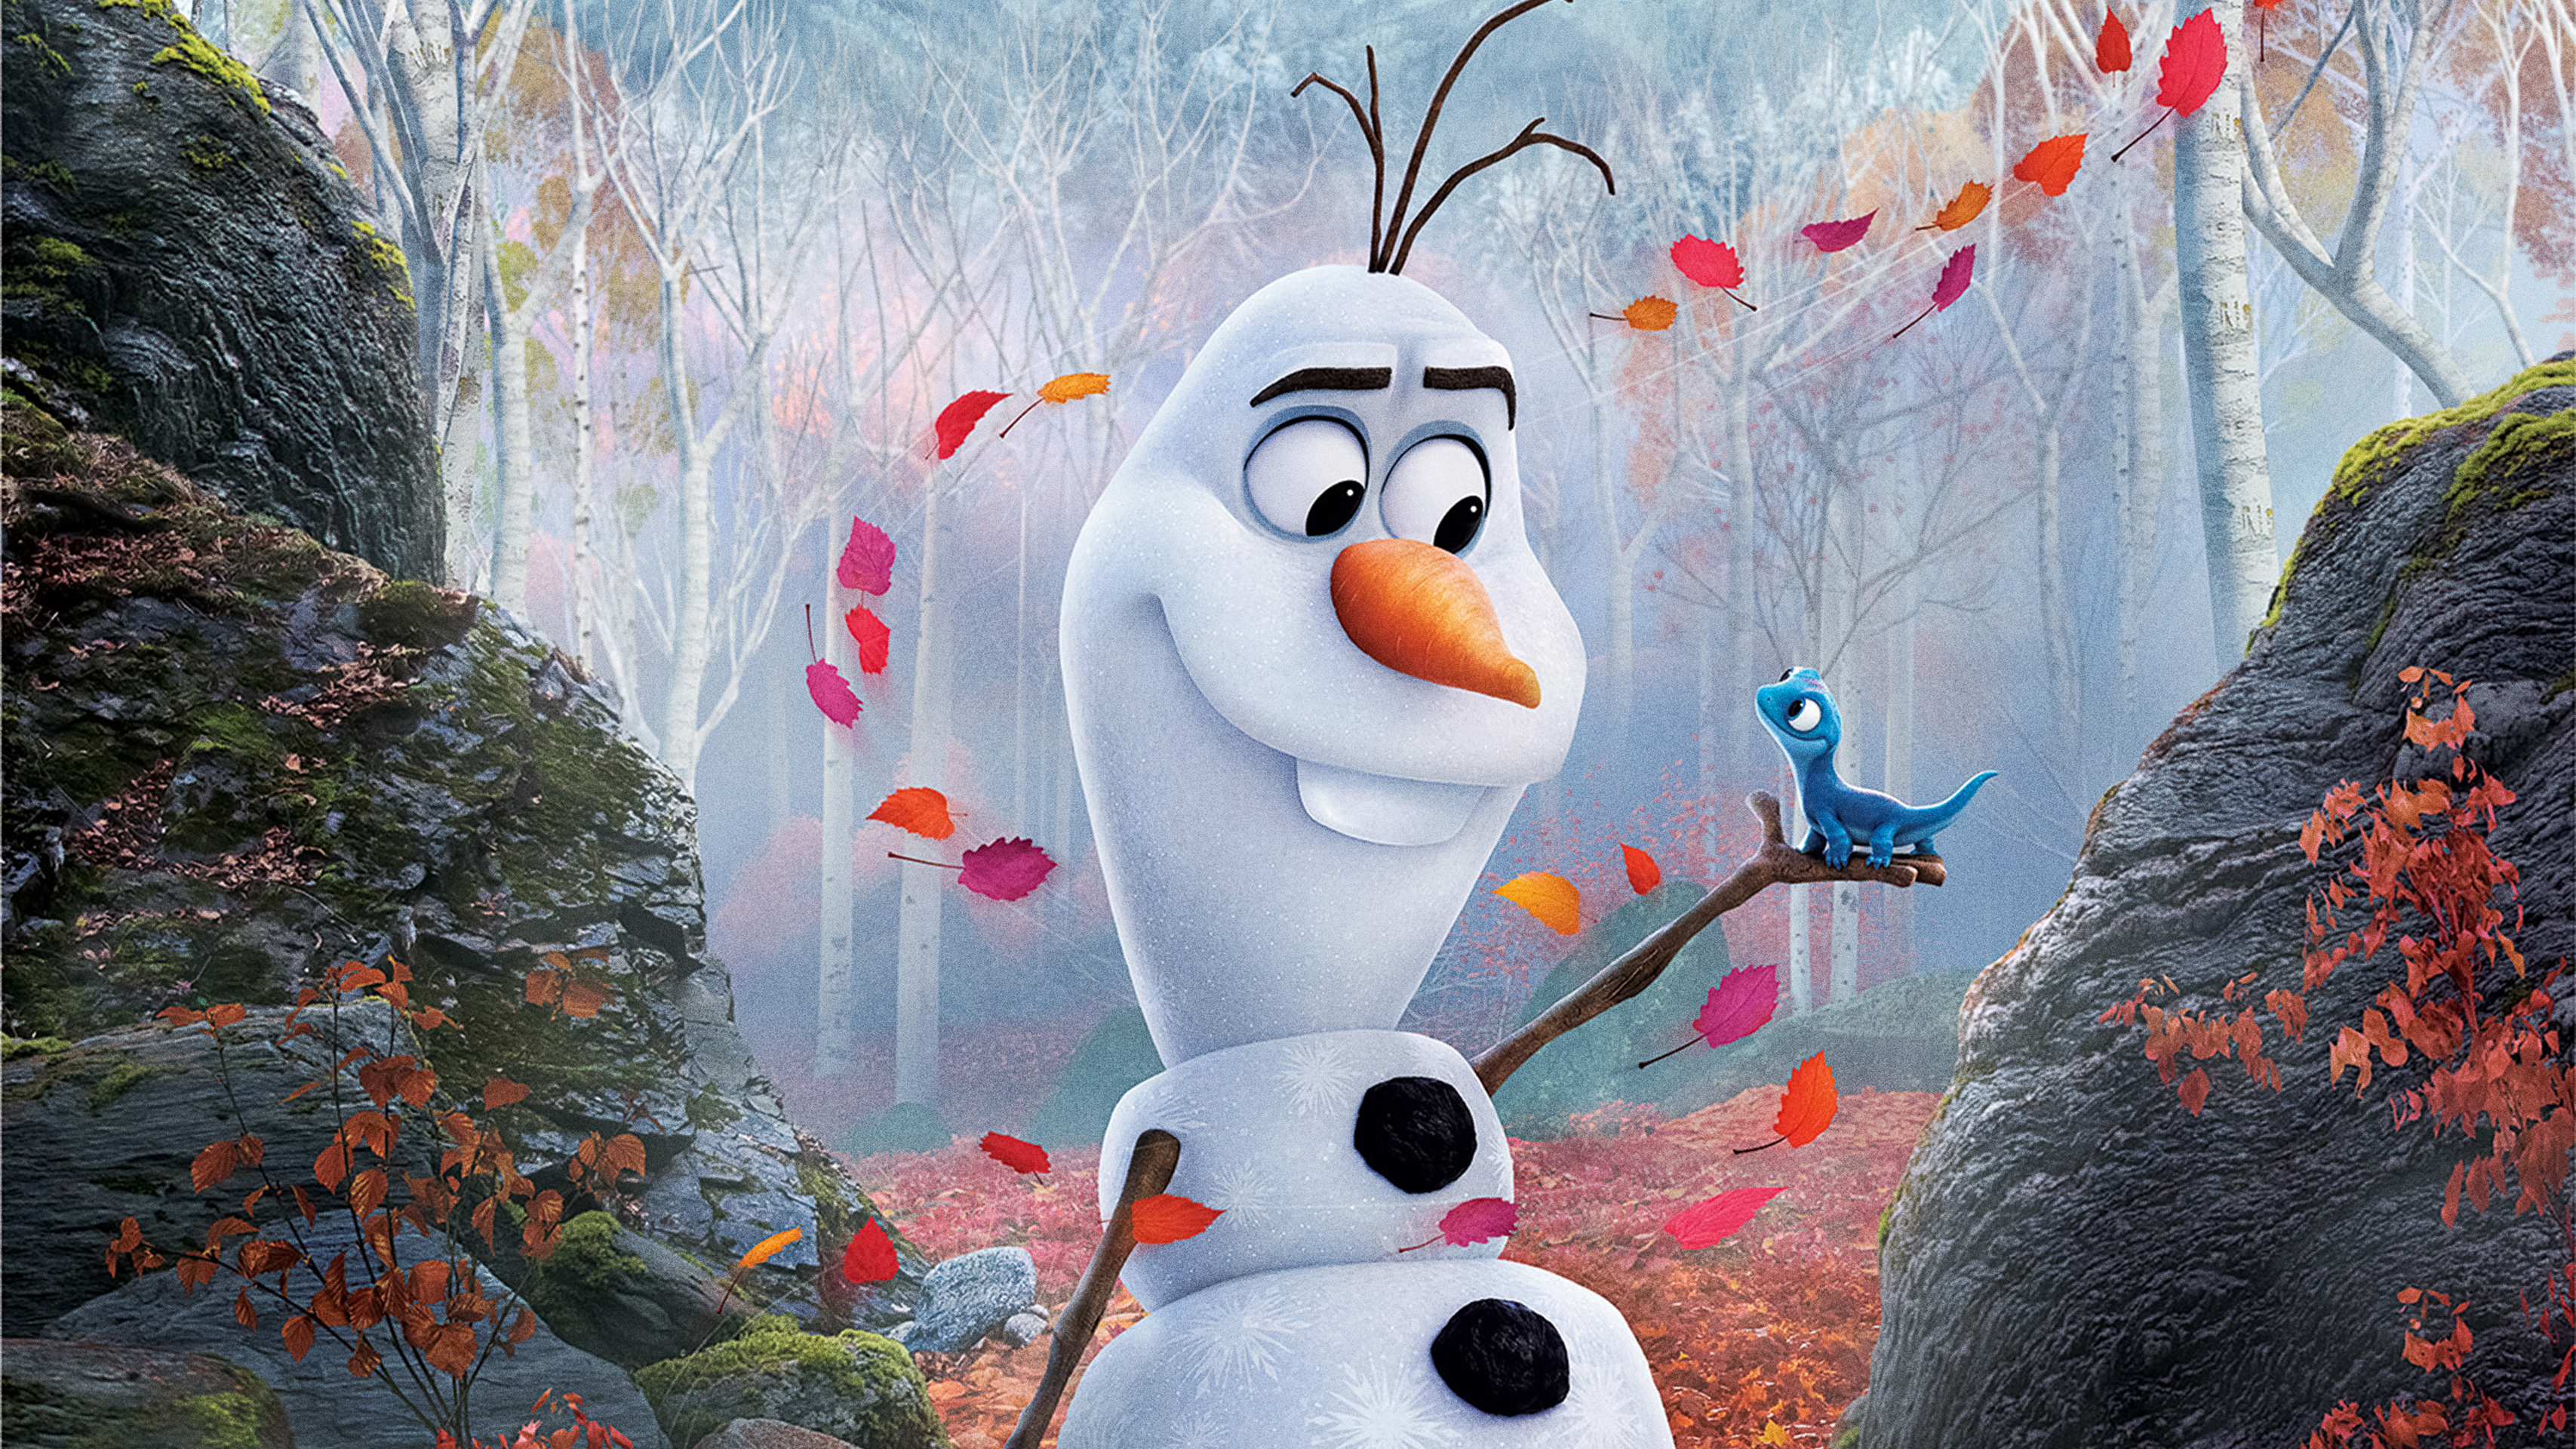 Olaf In Frozen 2 2019 Hd Movies 4k Wallpapers Images Backgrounds Photos And Pictures